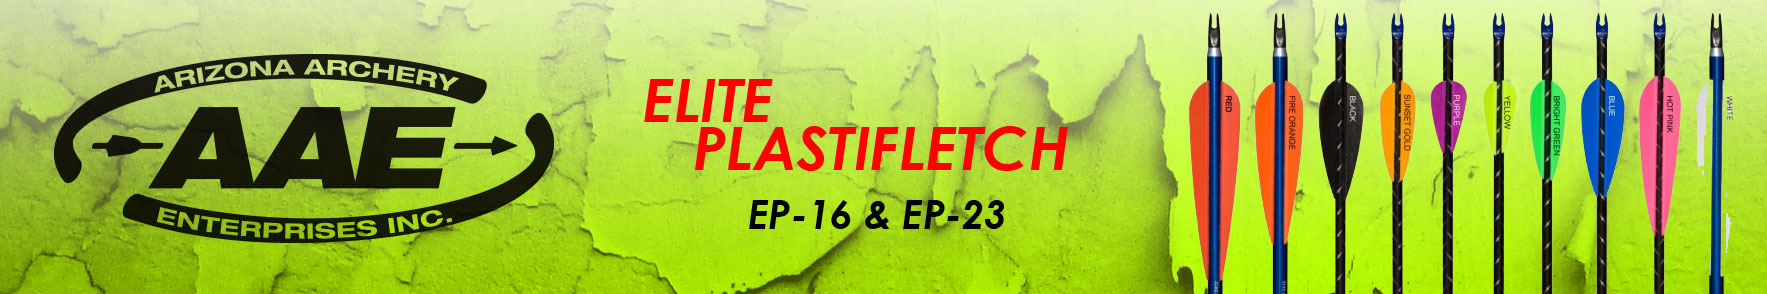 AAE Elite PLastifletch